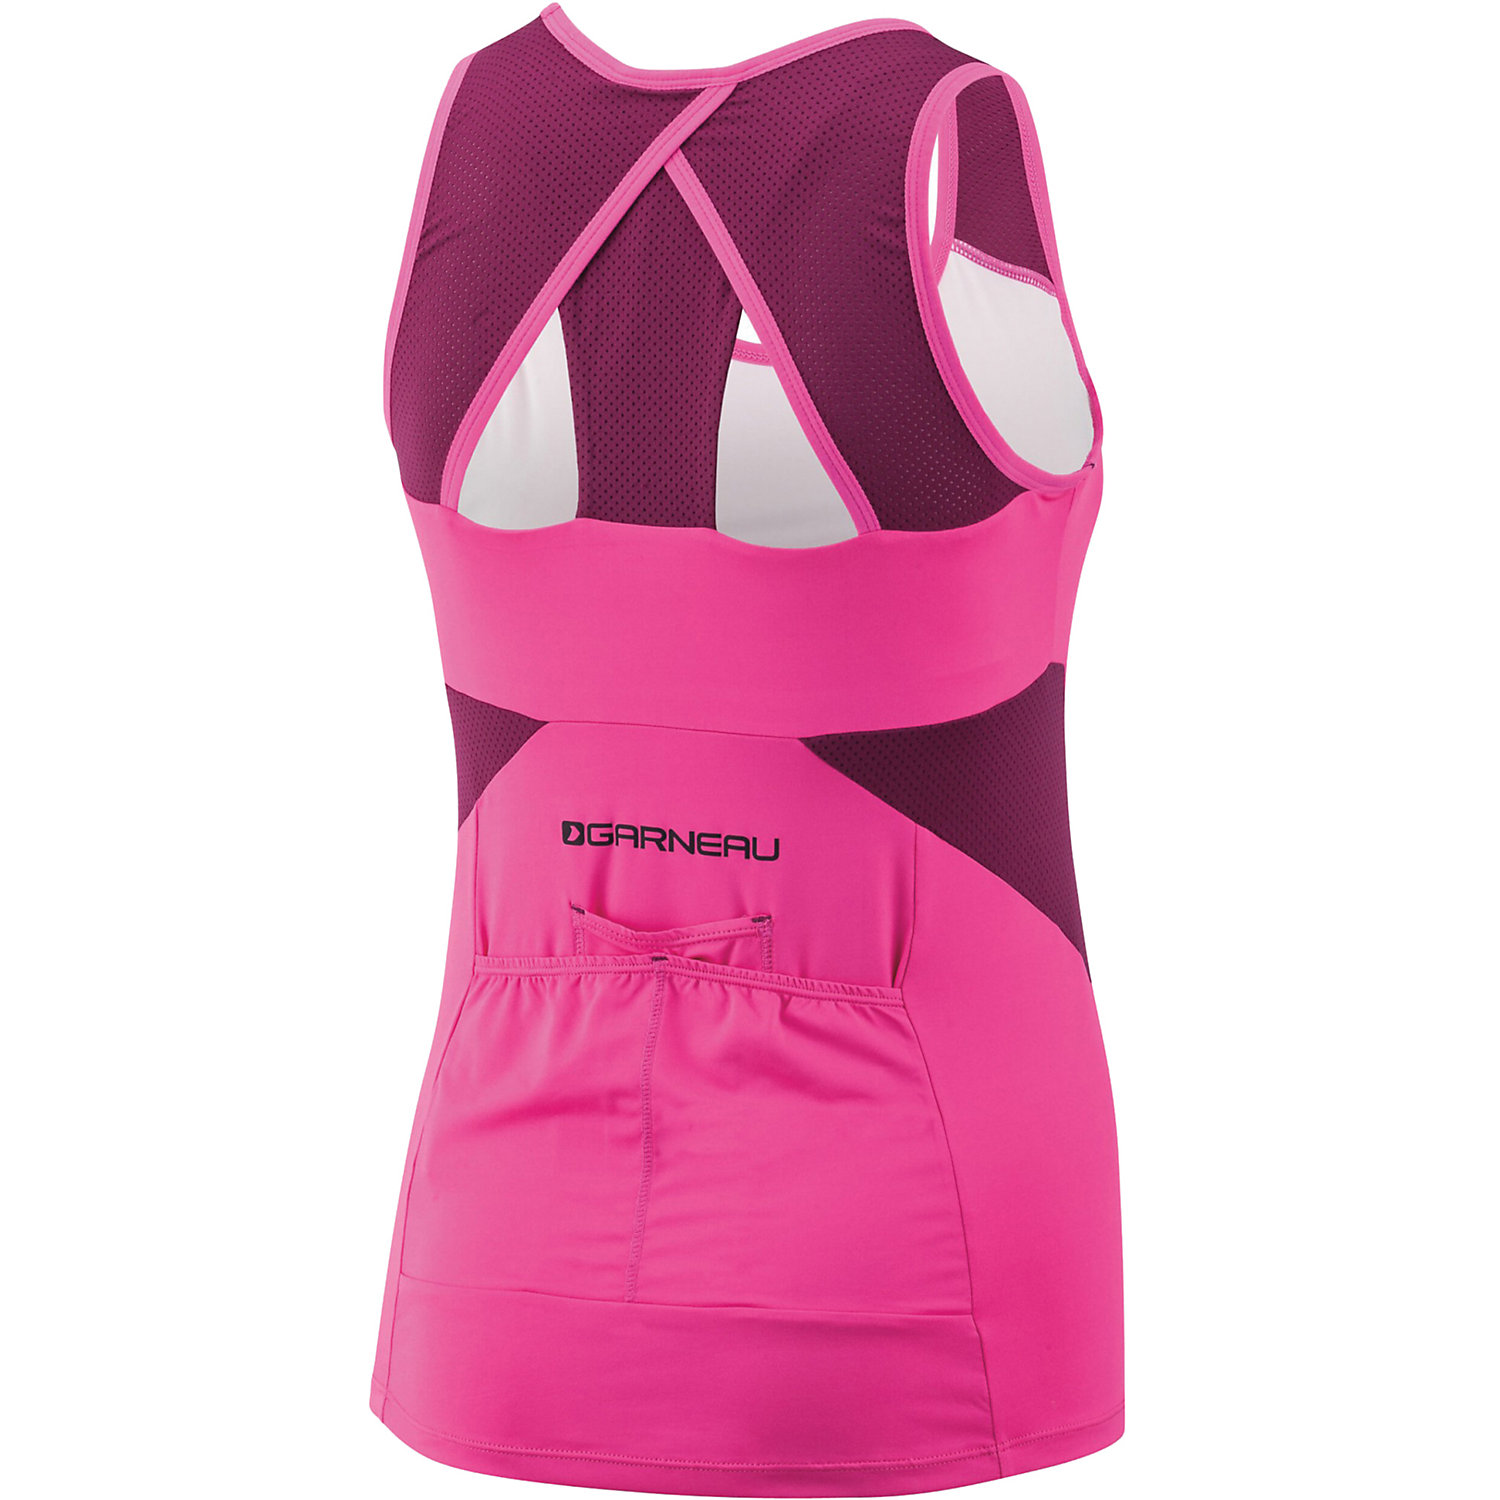 Louis Garneau Women s Lea Tank Top - Moosejaw b46f86300